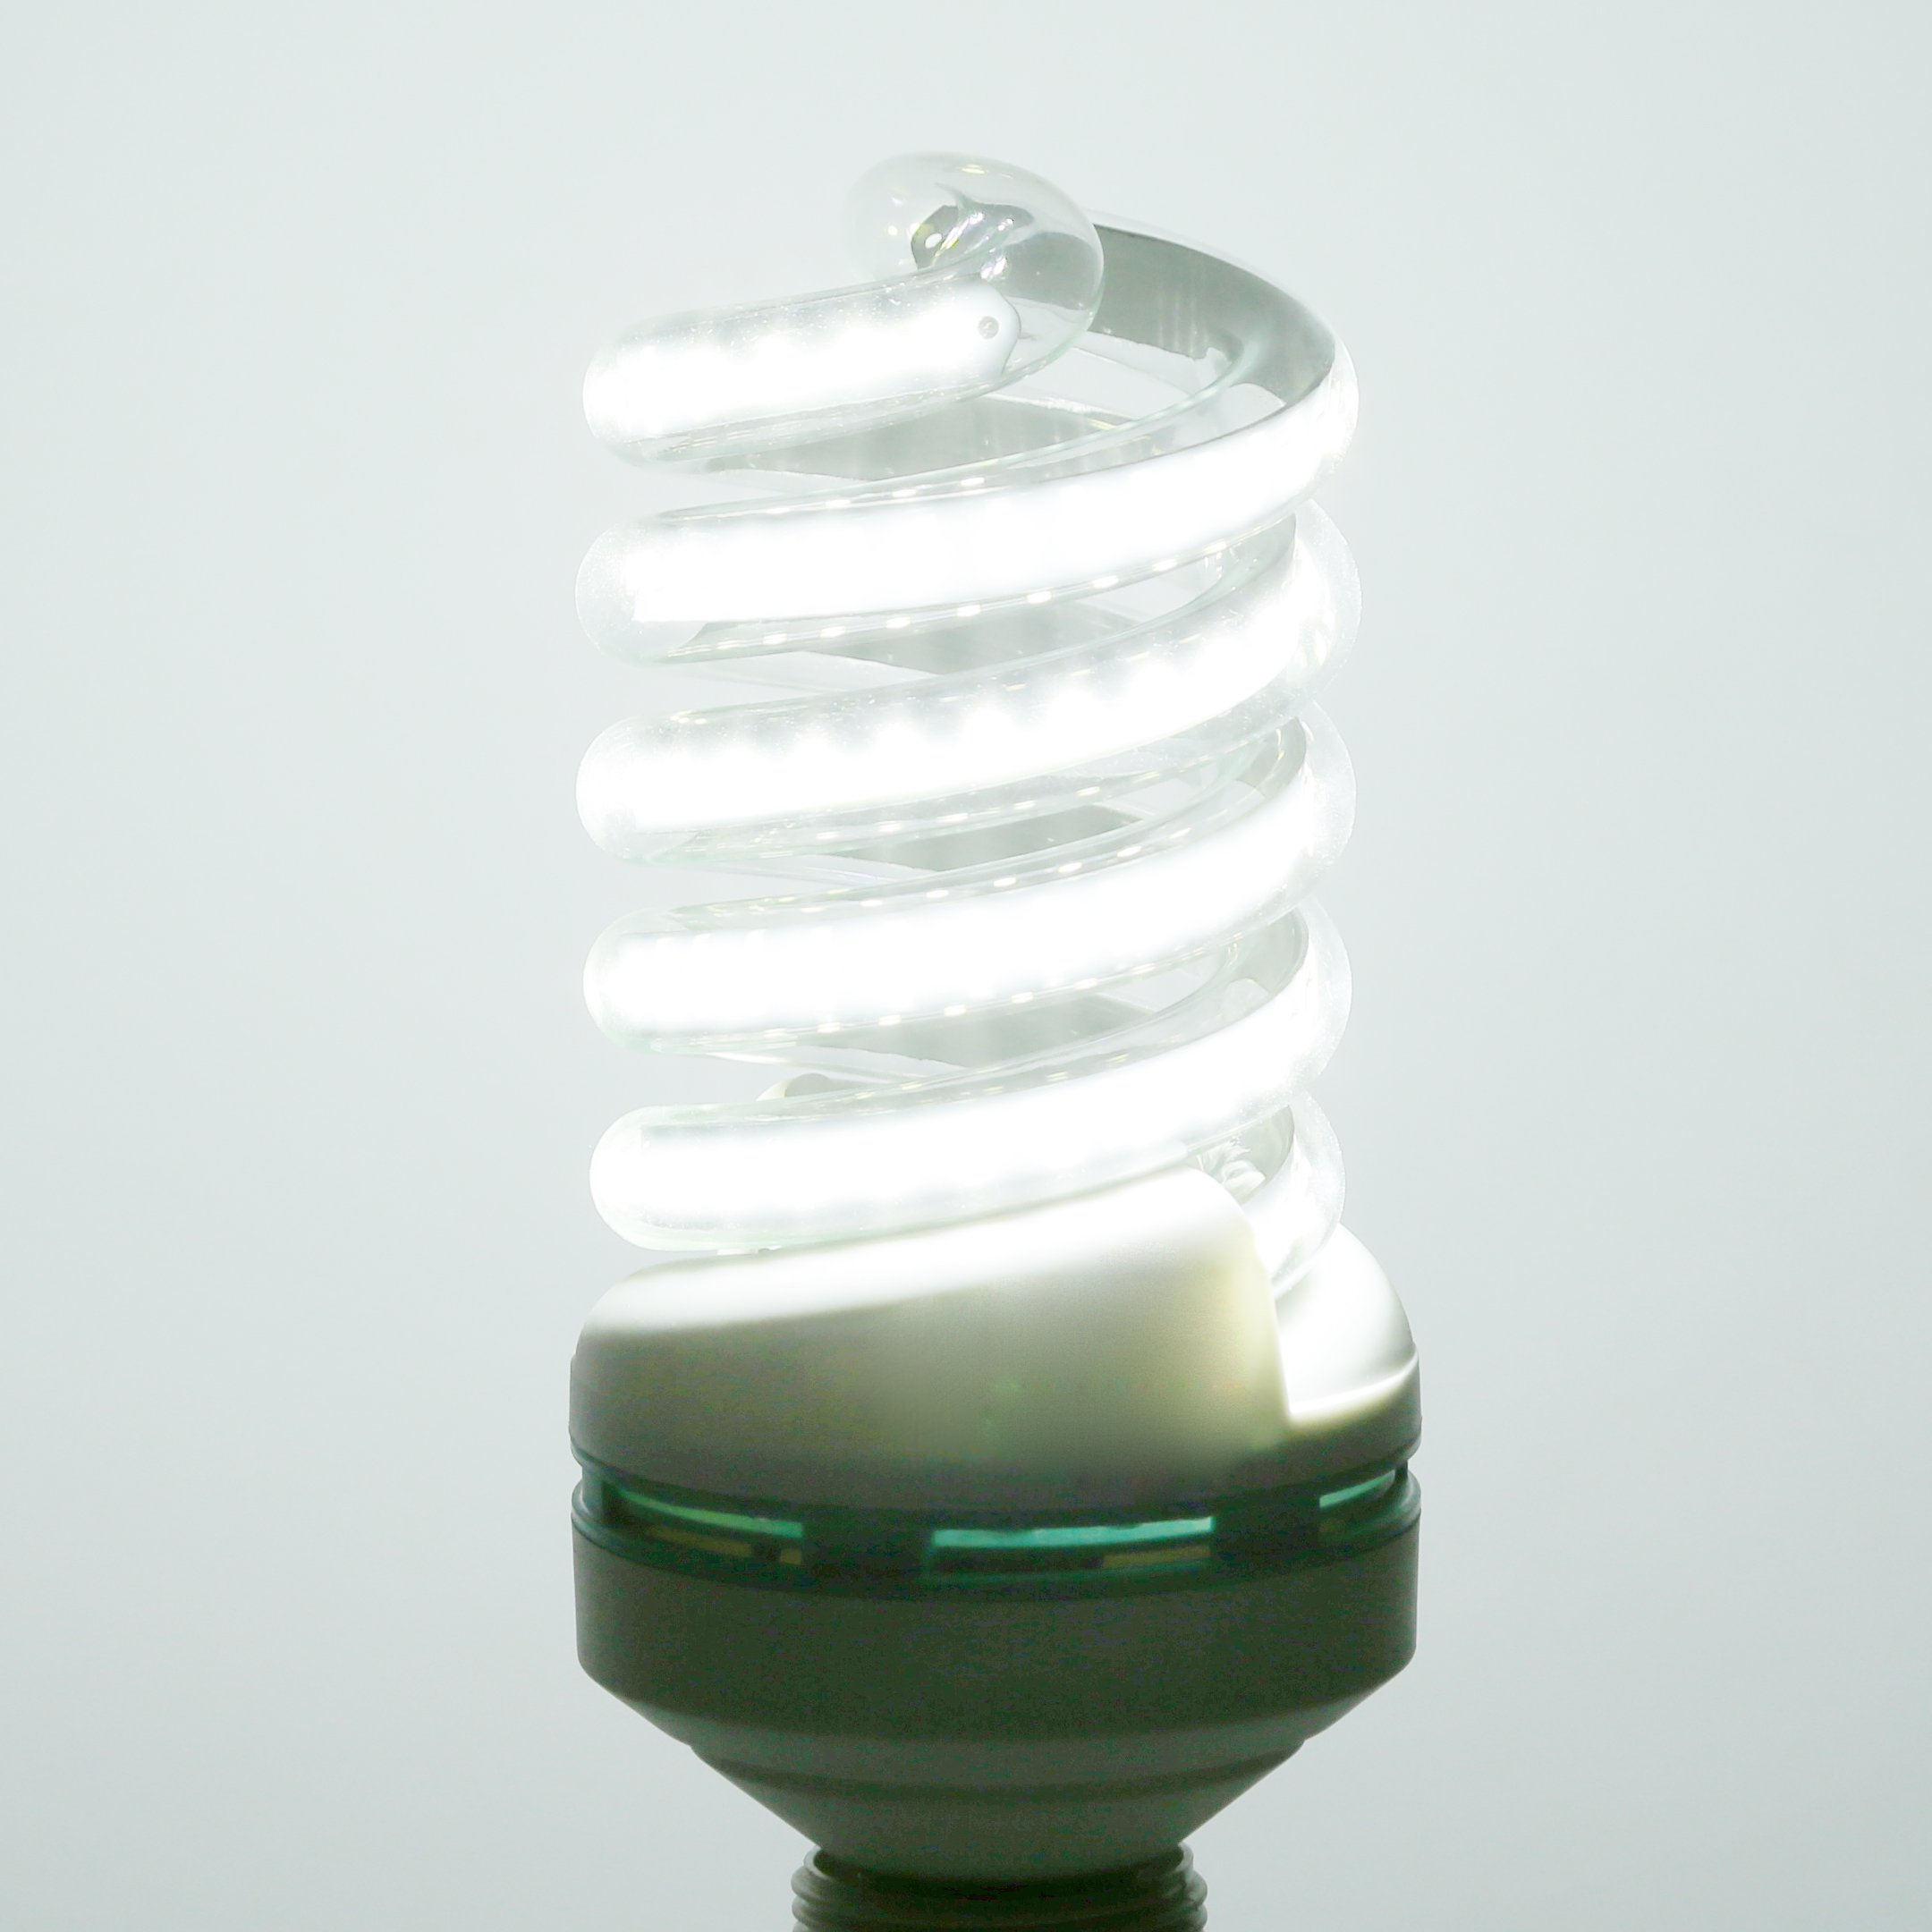 compact light brightest superb black filament most can fluorescent bulb lighting design cfl bulbs lamp